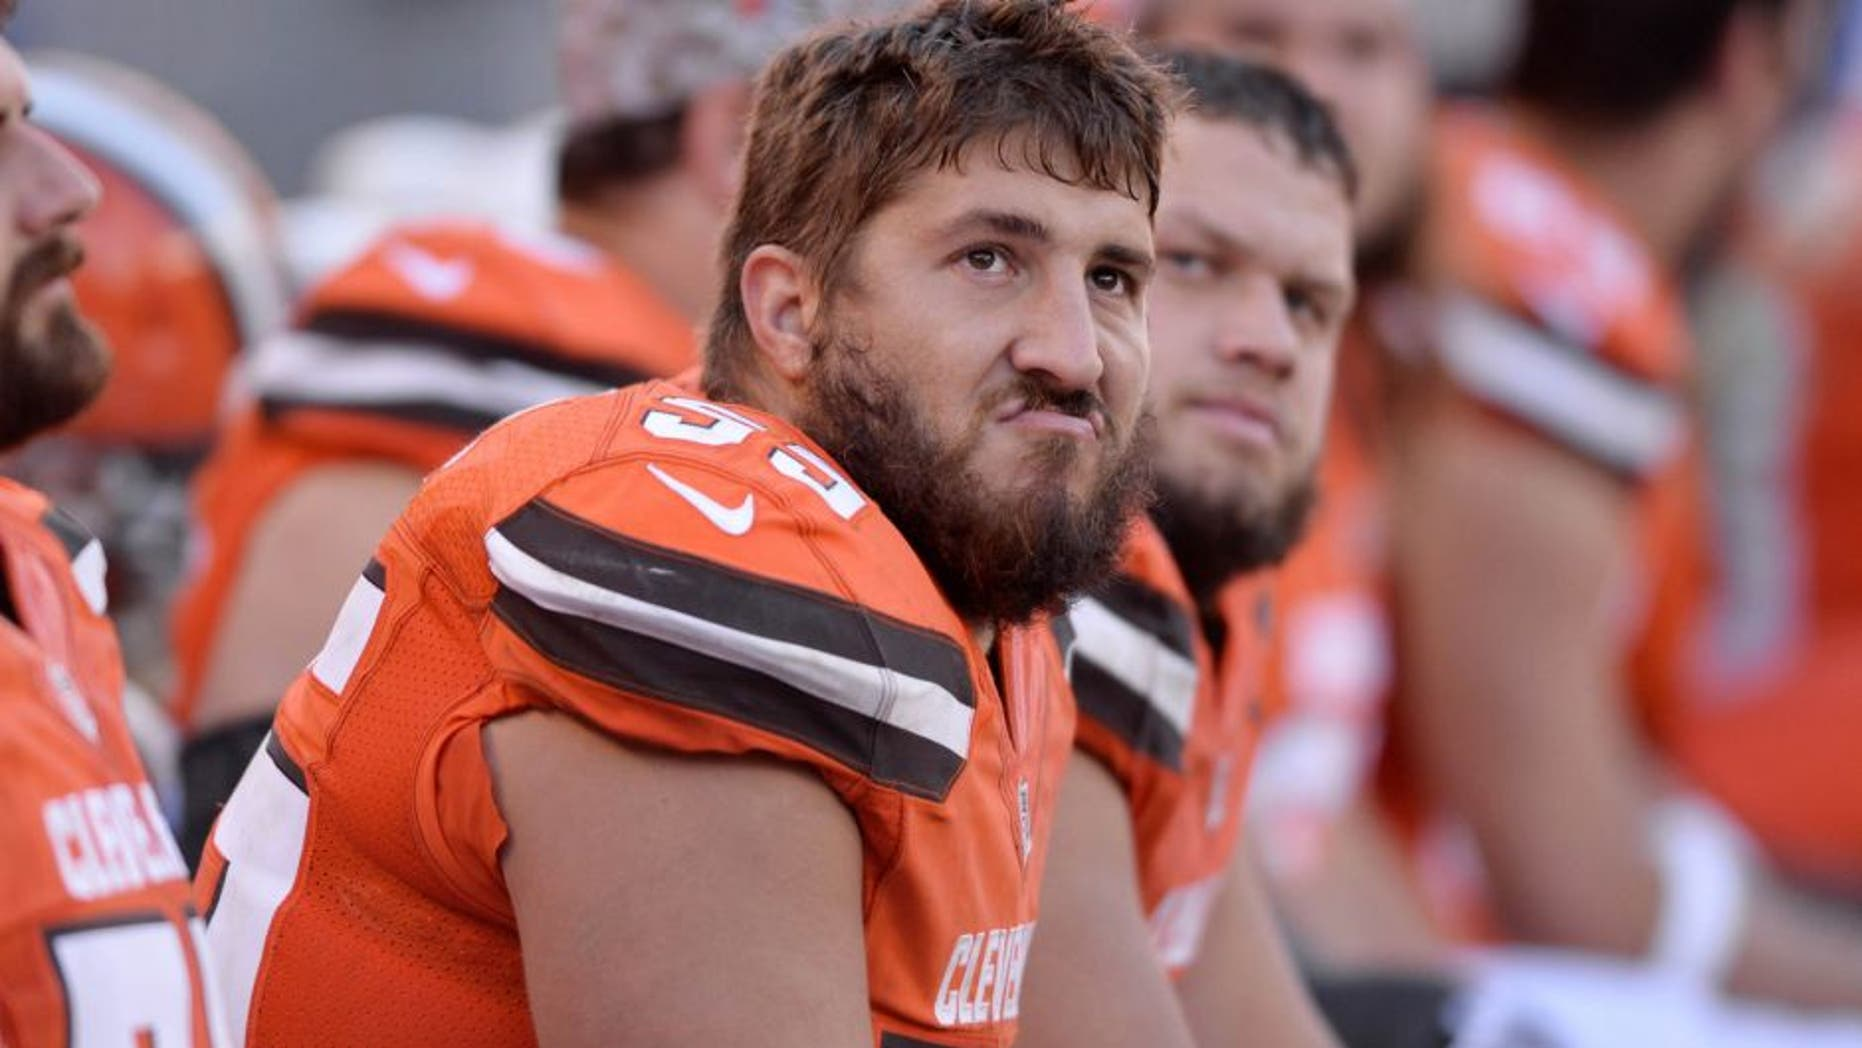 Nov 1, 2015; Cleveland, OH, USA; Cleveland Browns center Alex Mack (55) and guard Joel Bitonio (75) sit on the bench during the fourth quarter against the Arizona Cardinals at FirstEnergy Stadium. The Cardinals won 34-20. Mandatory Credit: Ken Blaze-USA TODAY Sports